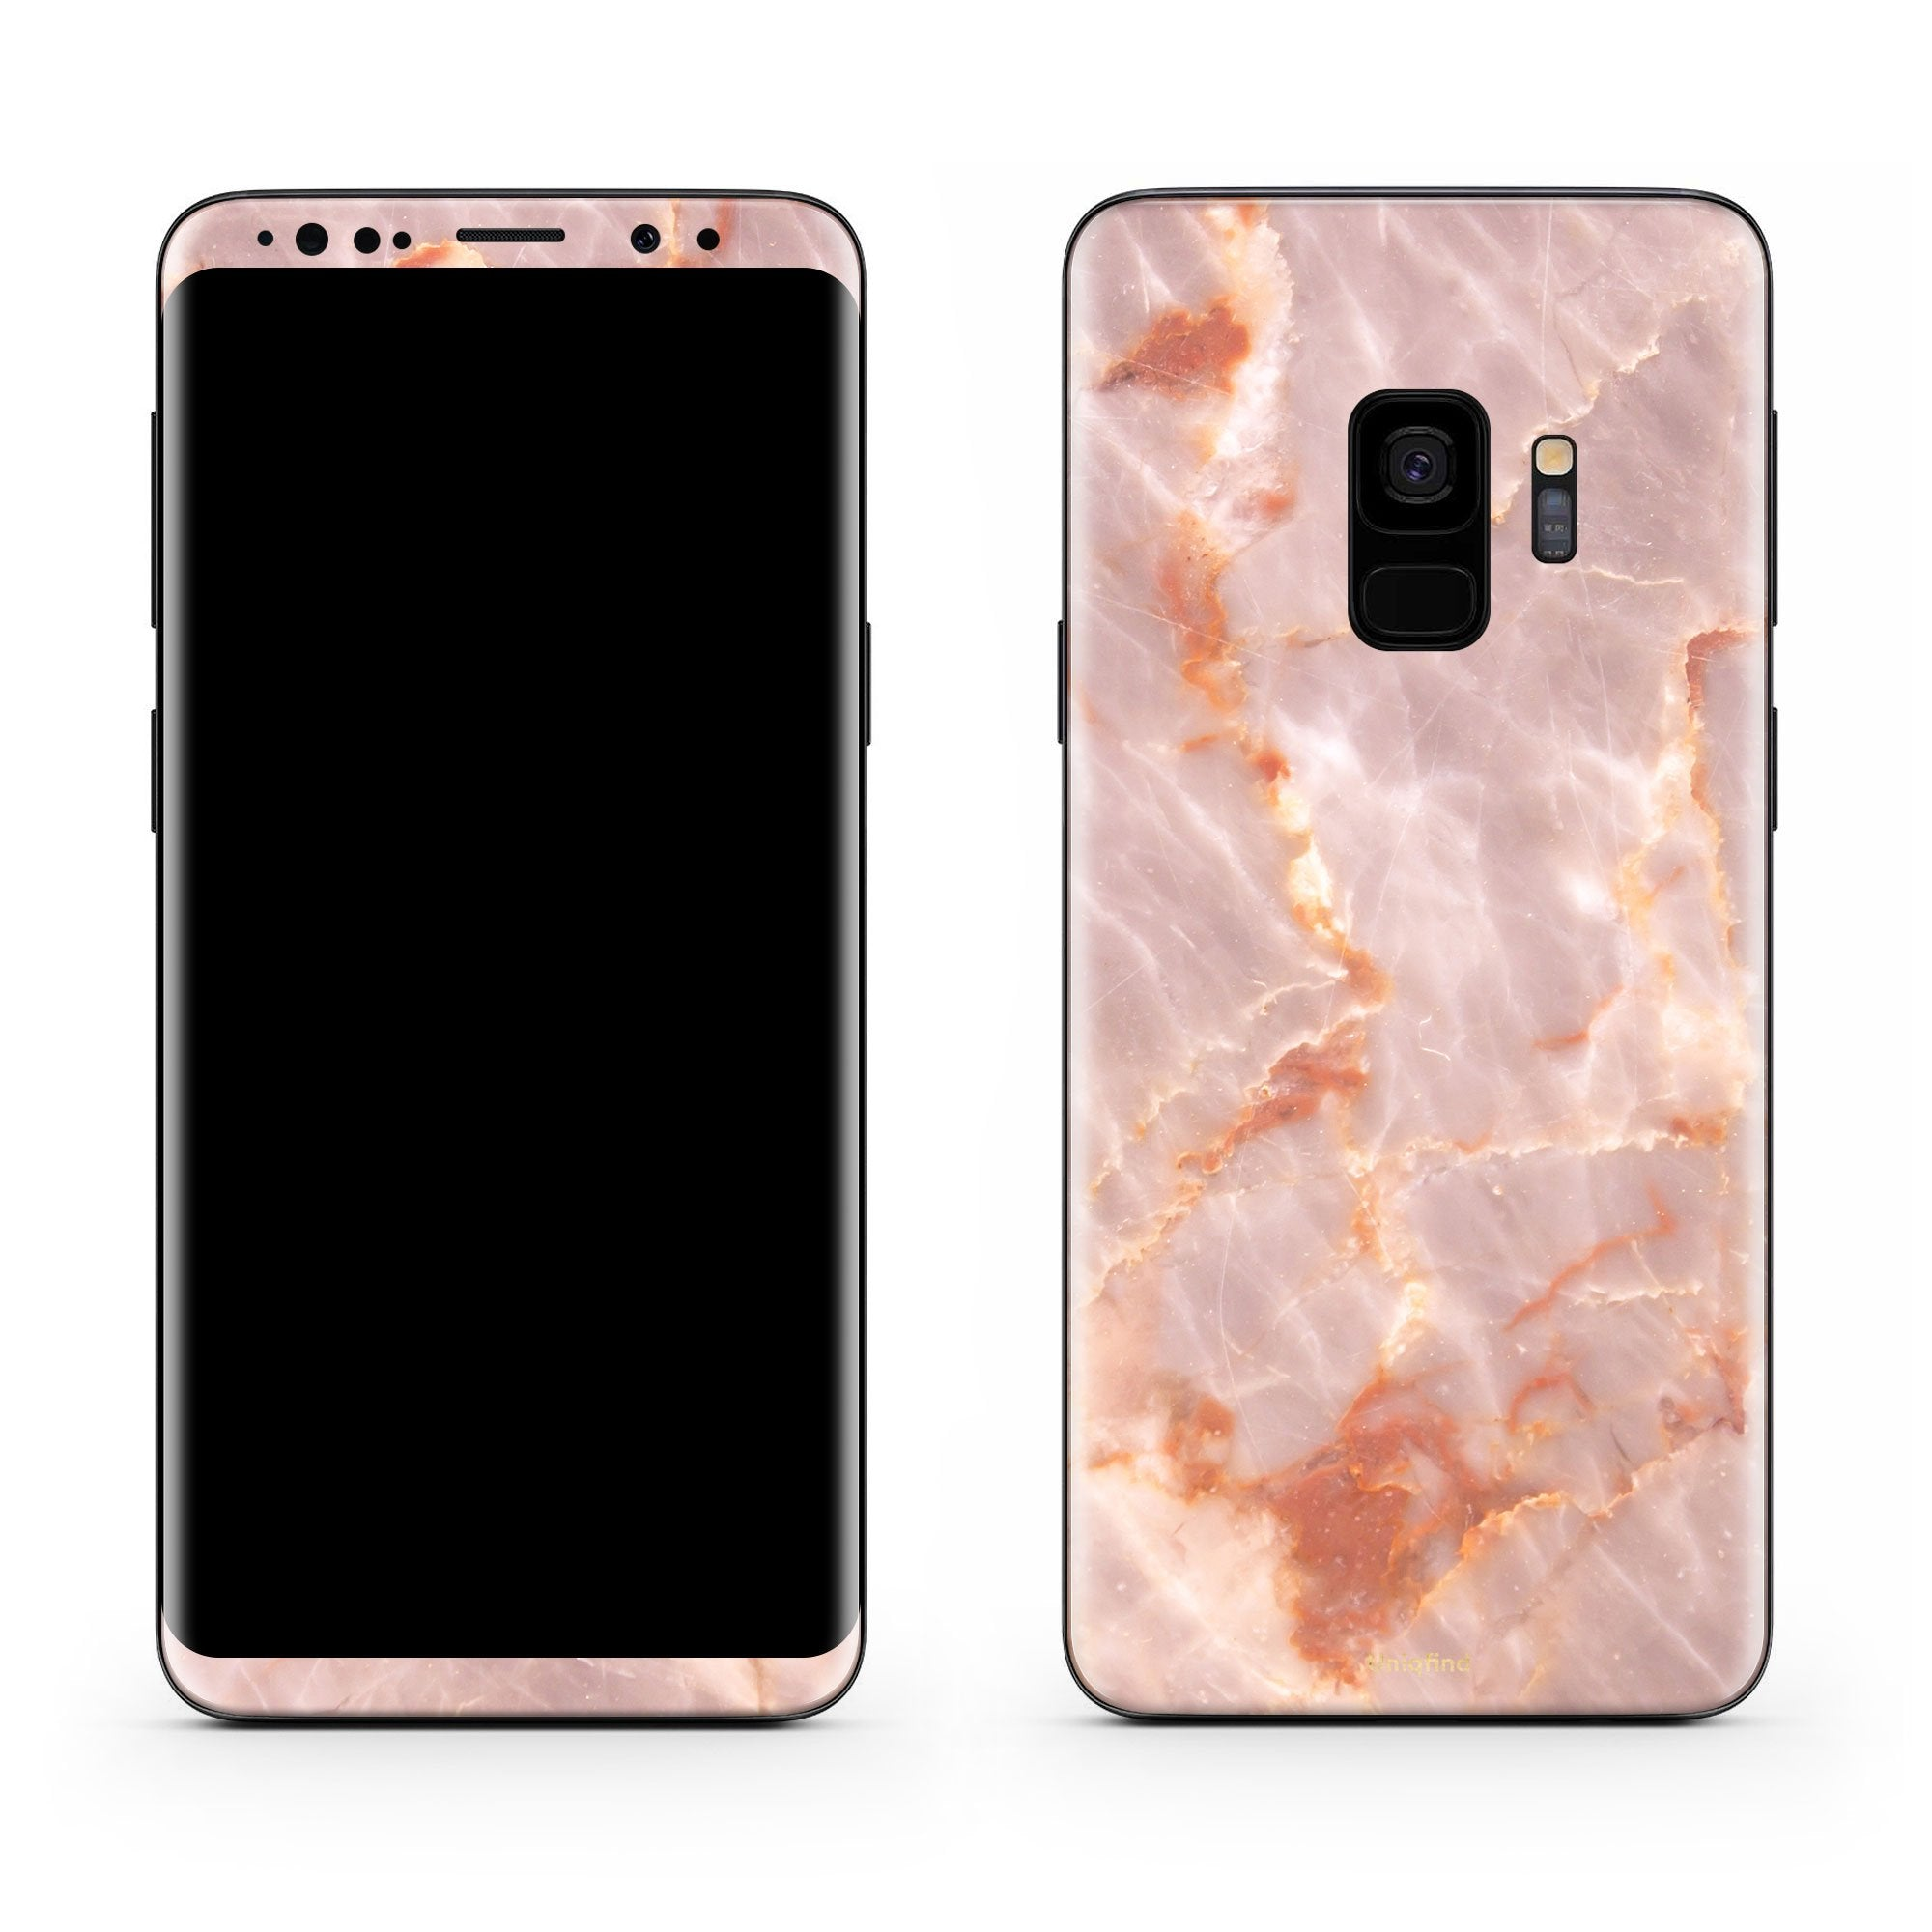 Blush Marble Galaxy S9 Plus Skin + Case